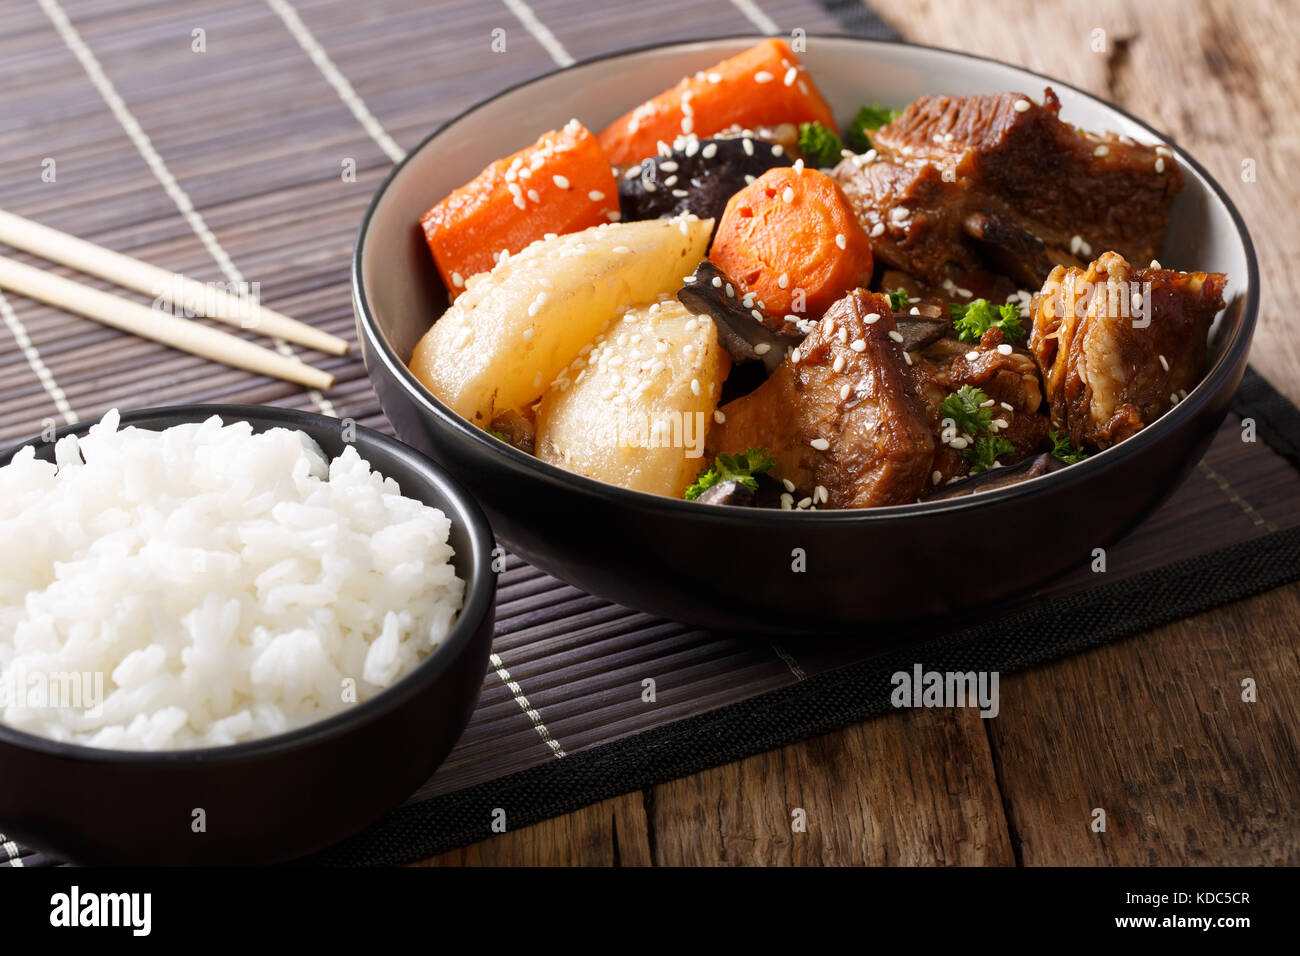 Kalbi jjim is slowly braised beef short ribs in a soy sauce, sesame oil, and garlic sauce. It is often prepared for special occasions Kalbi jjim is slowly braised beef short ribs in a soy sauce, sesame oil, and garlic sauce. It is often prepared for special occasions new pictures